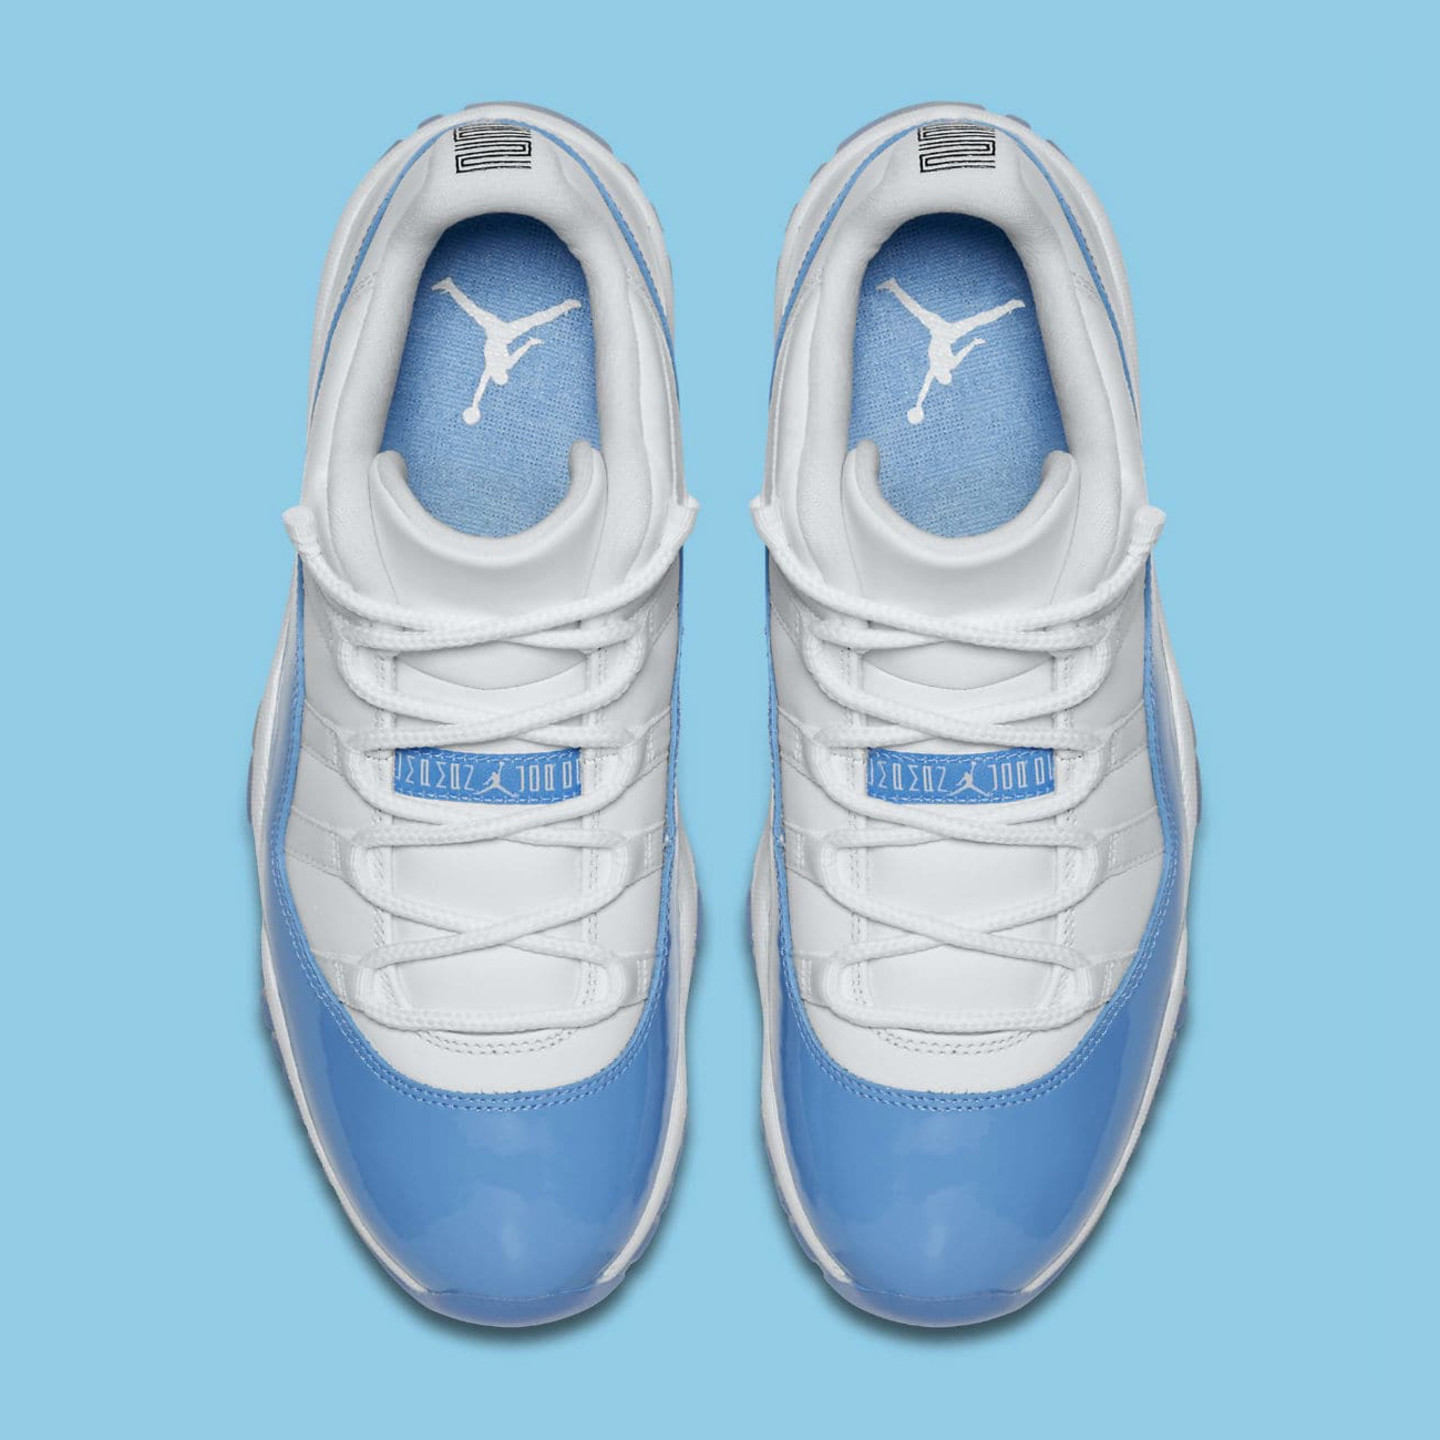 Jordan Air Jordan 11 Retro Low 'UNC' White / University Blue 528895-106-43